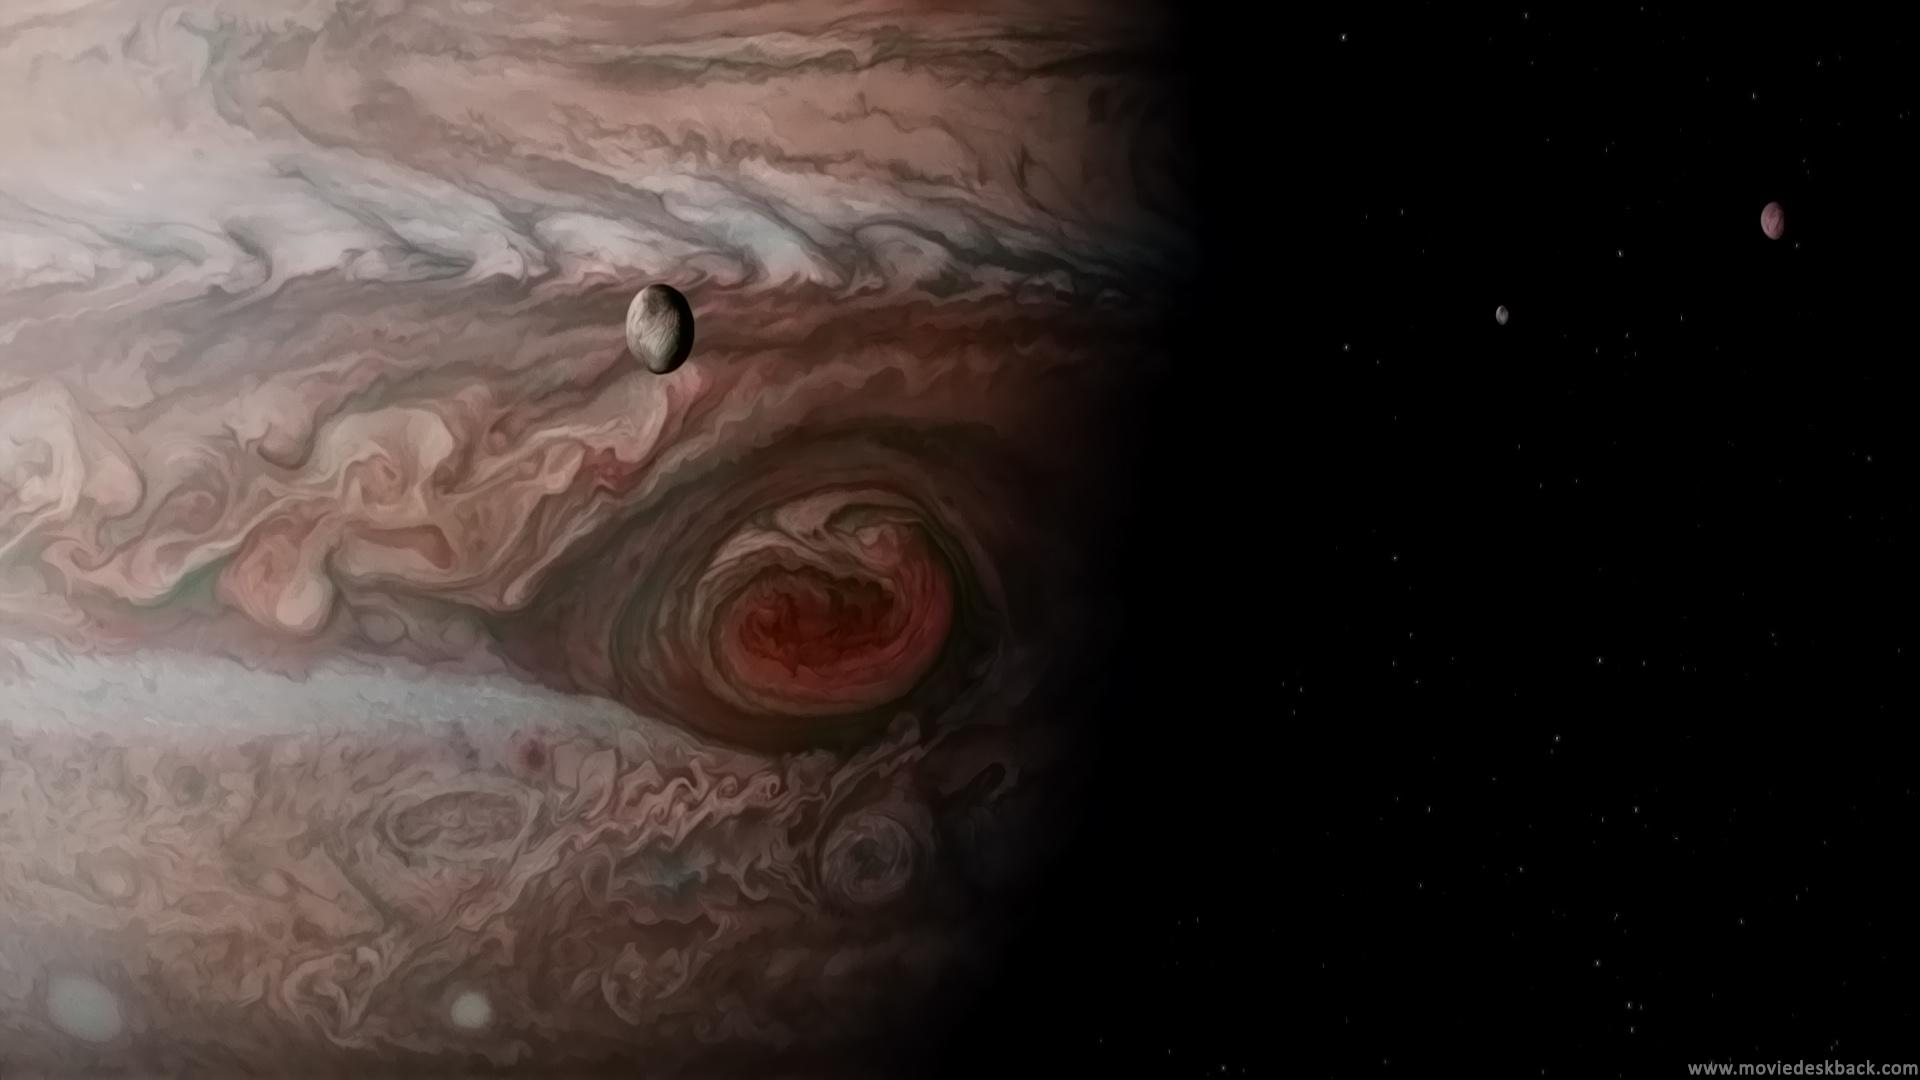 Jupiter Wallpapers 4K